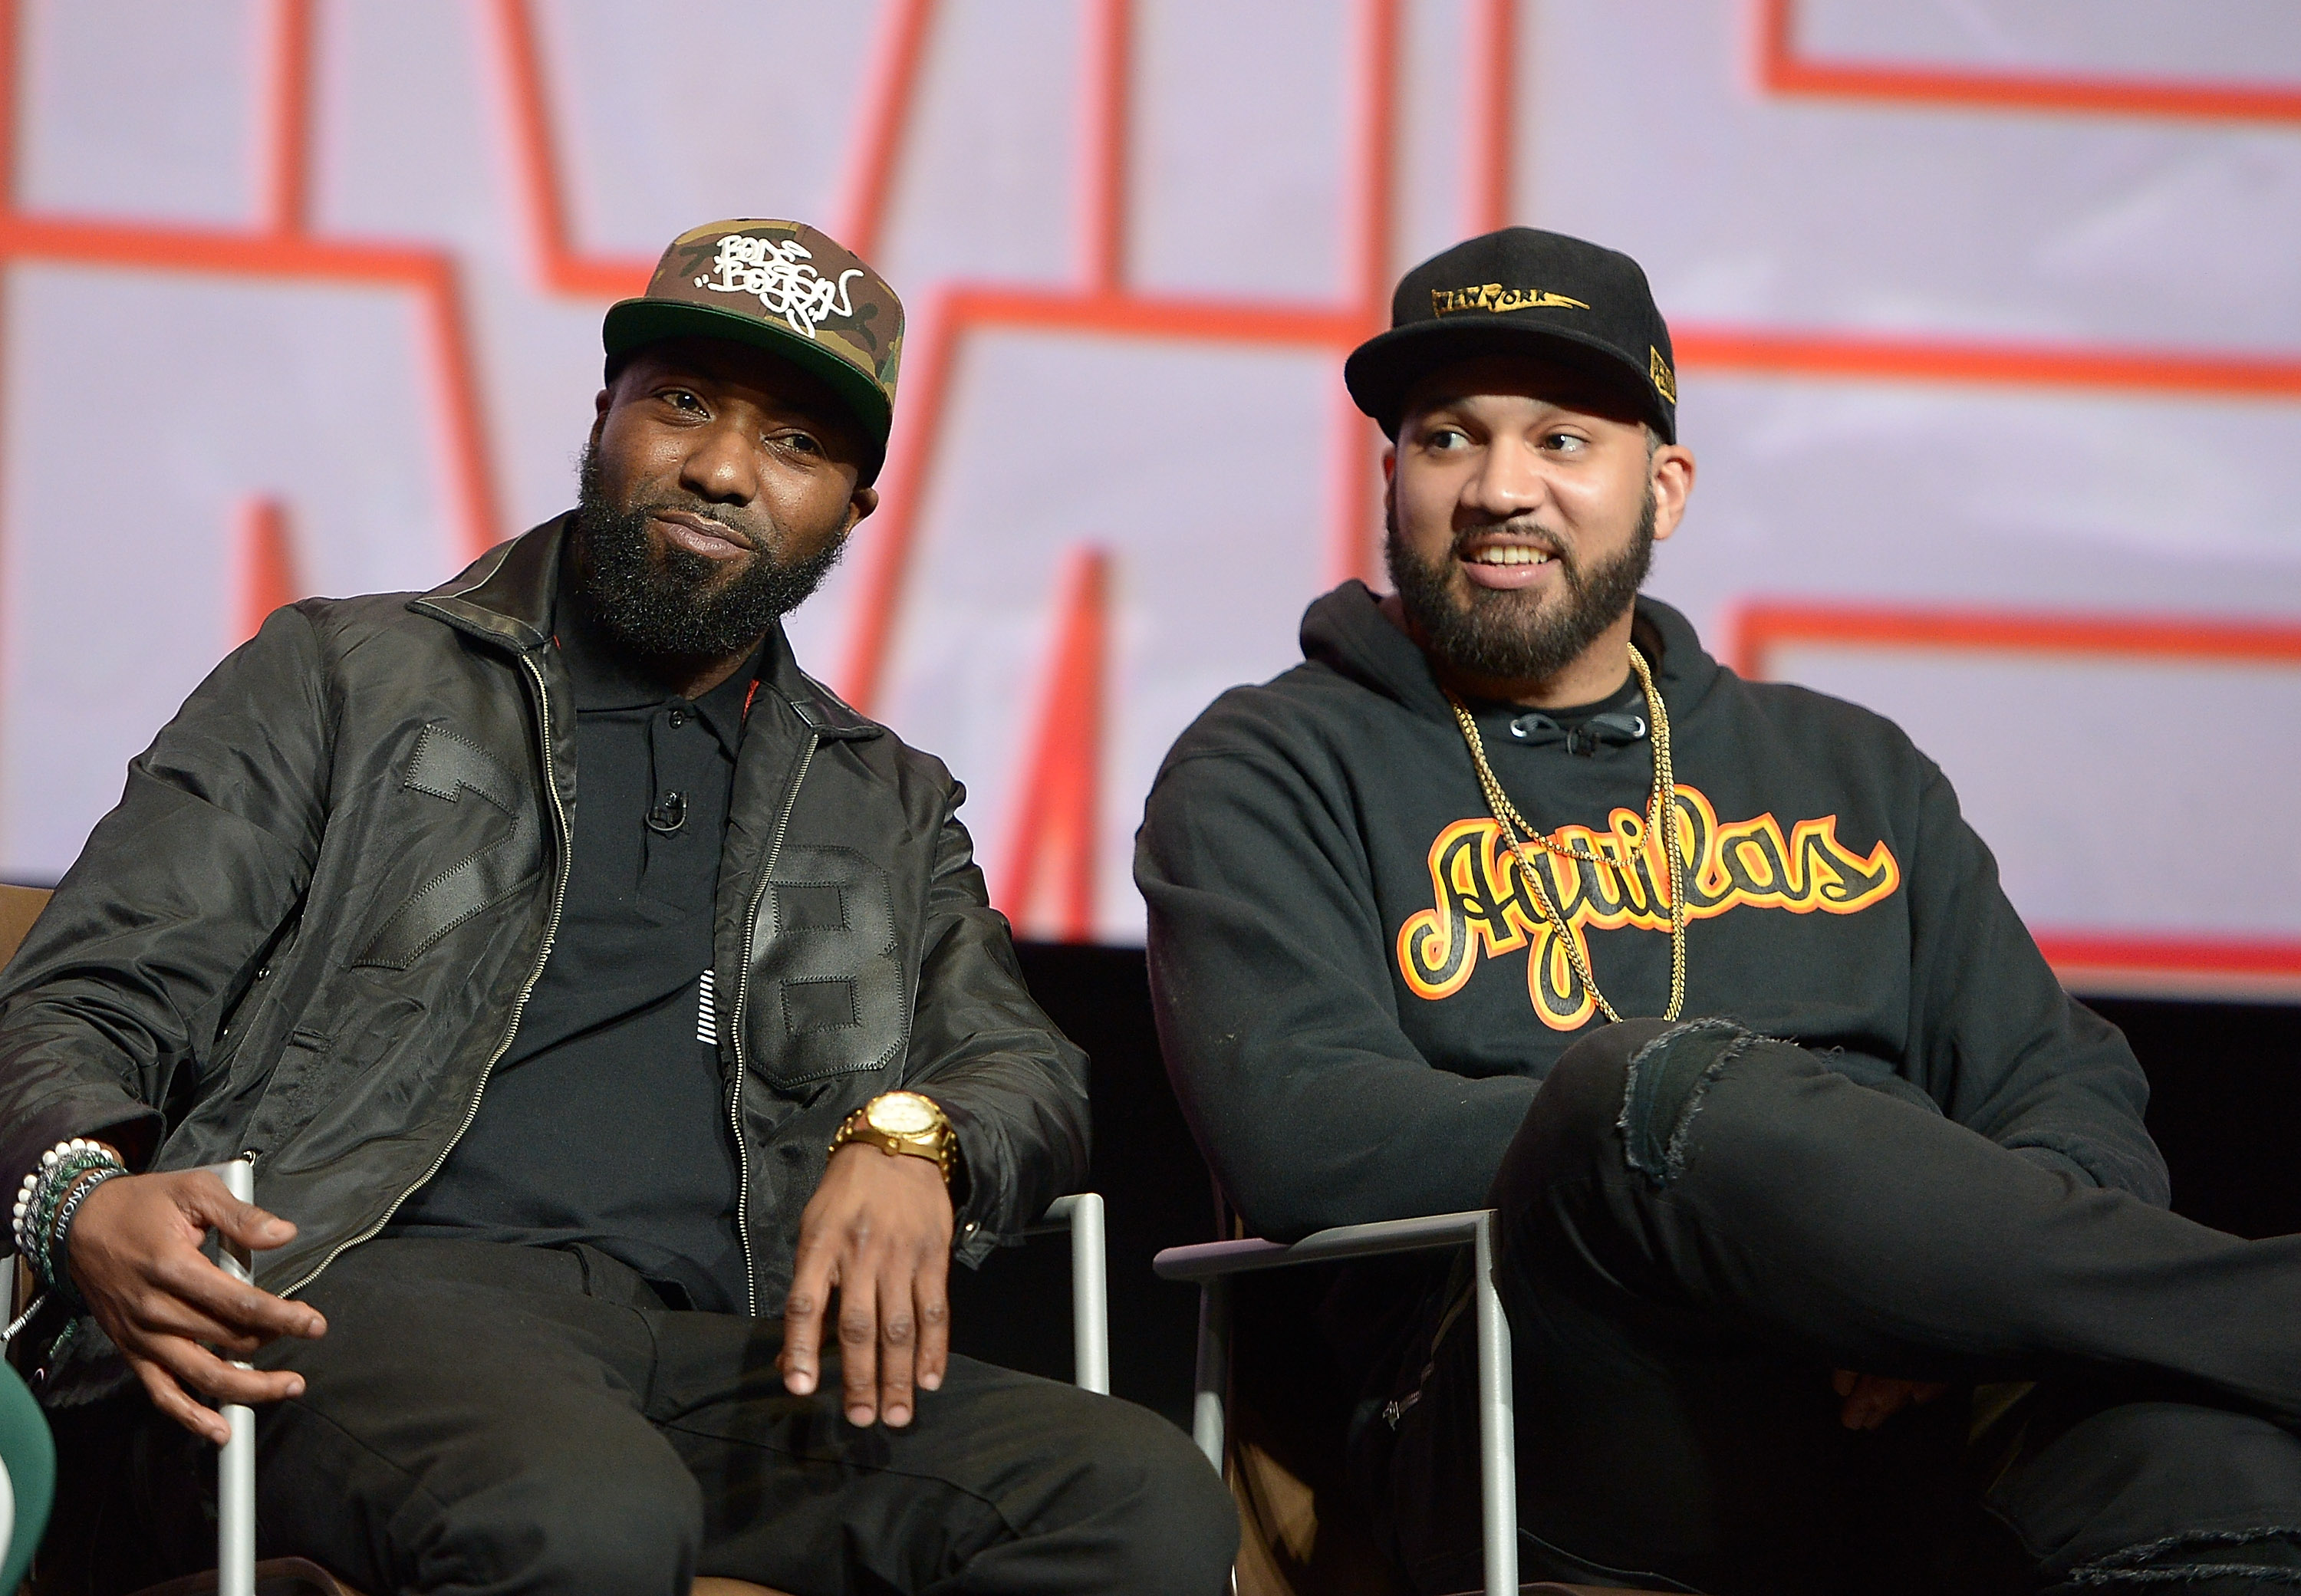 Desus Nice and The Kid Mero participate in a q&a at the FYC Event for VICELAND